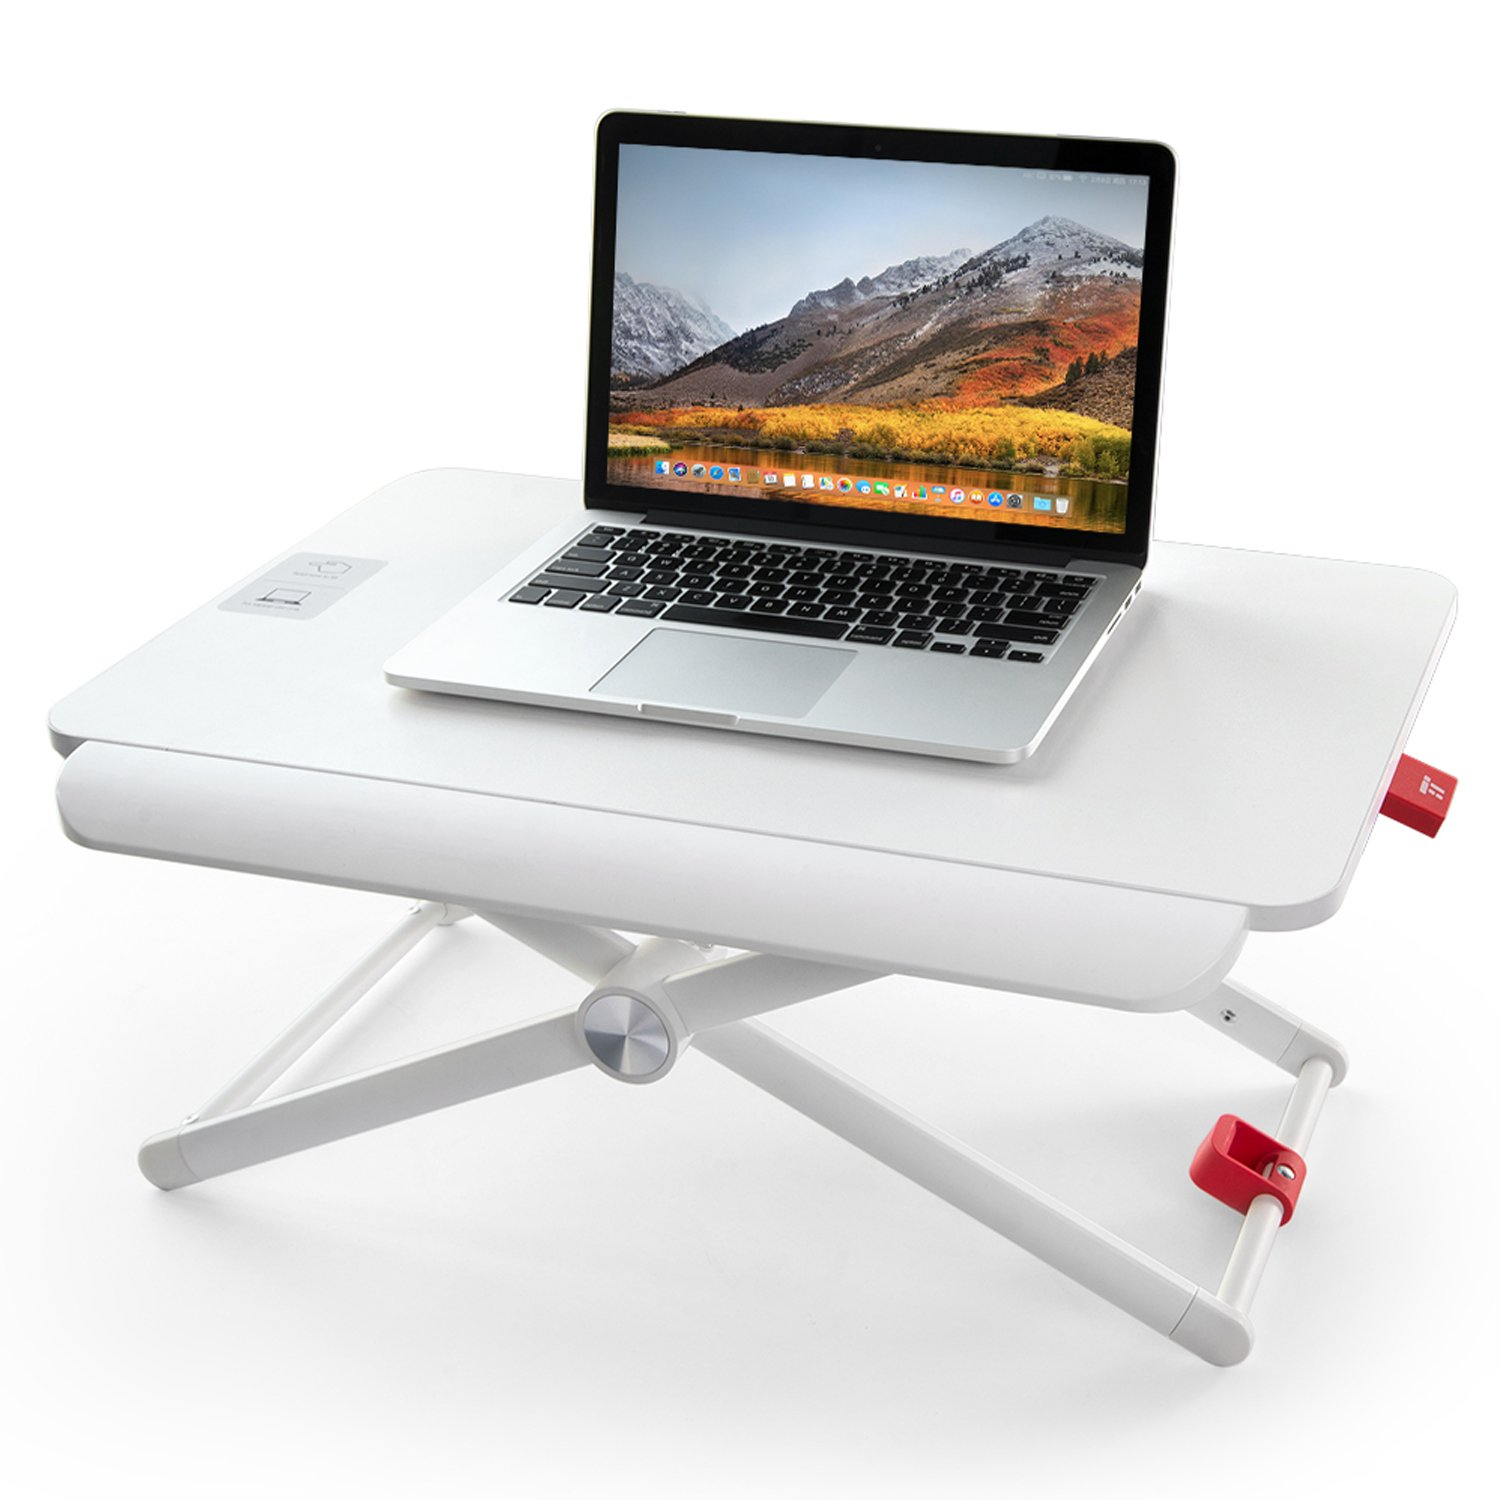 """TaoTronics Standing Desk Converter, Height-Adjustable Stand Up Desk, 24"""" Laptop Table, Notebook Stand, Sit to Stand in Seconds, White"""